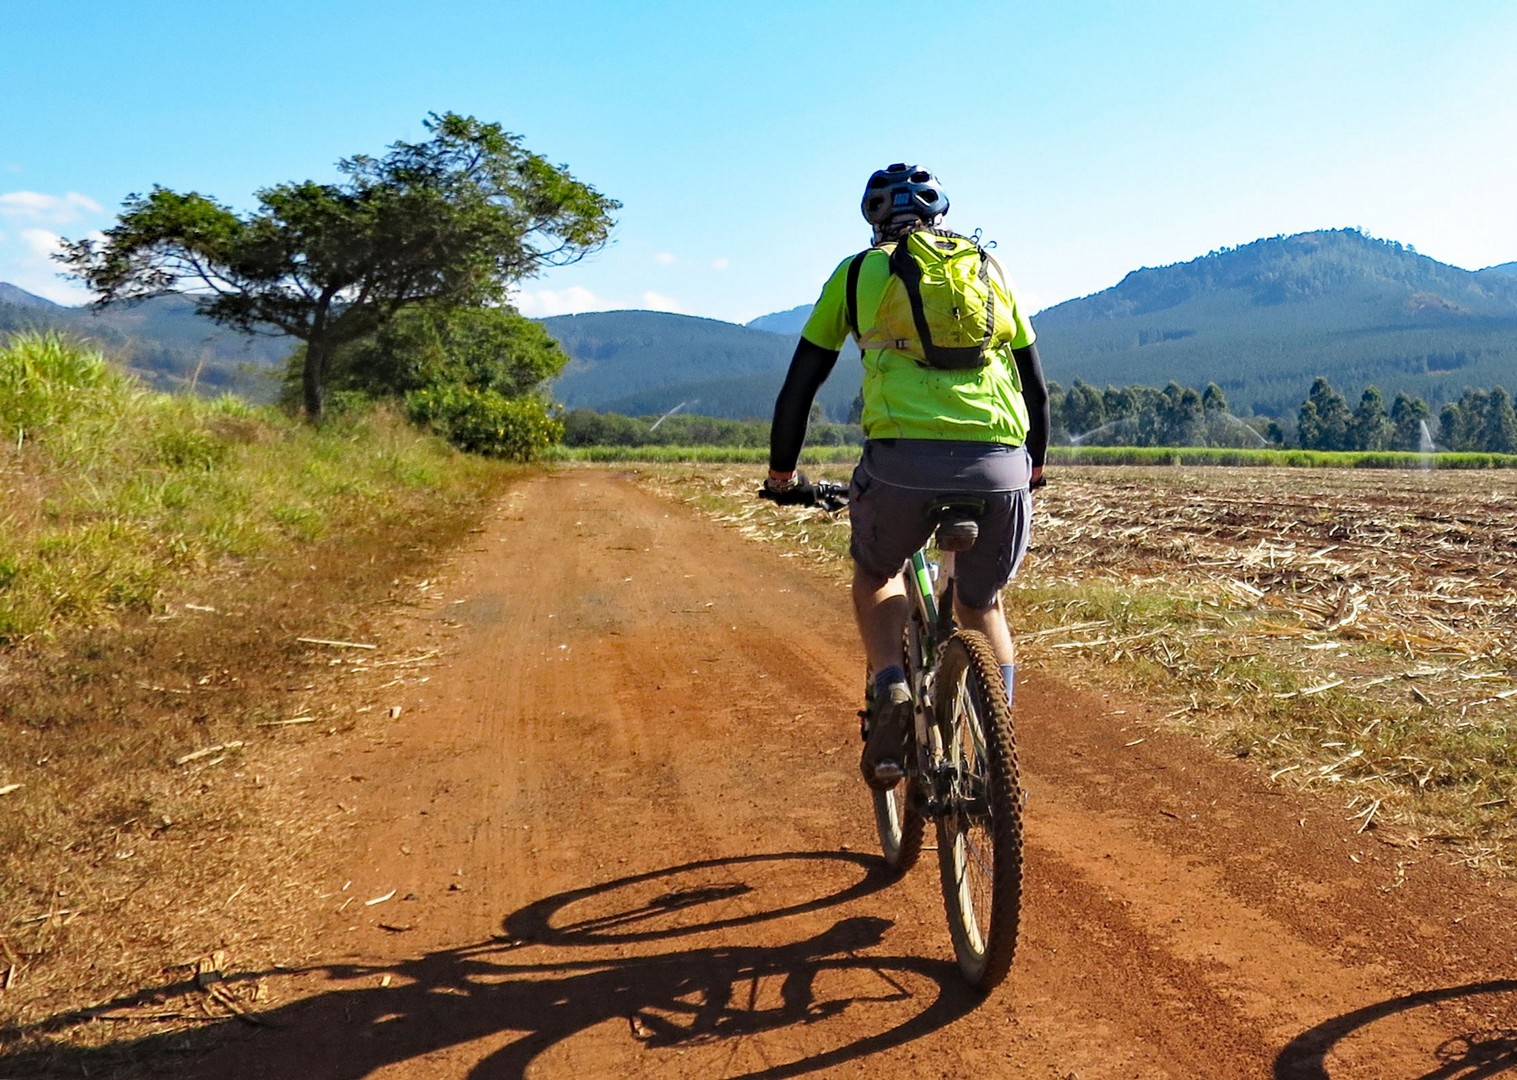 unexplored-biking-mountain-bike-holiday-in-africa-swaziland.jpg - Swaziland (Eswatini) - Singletrack and Sundowners - Mountain Biking